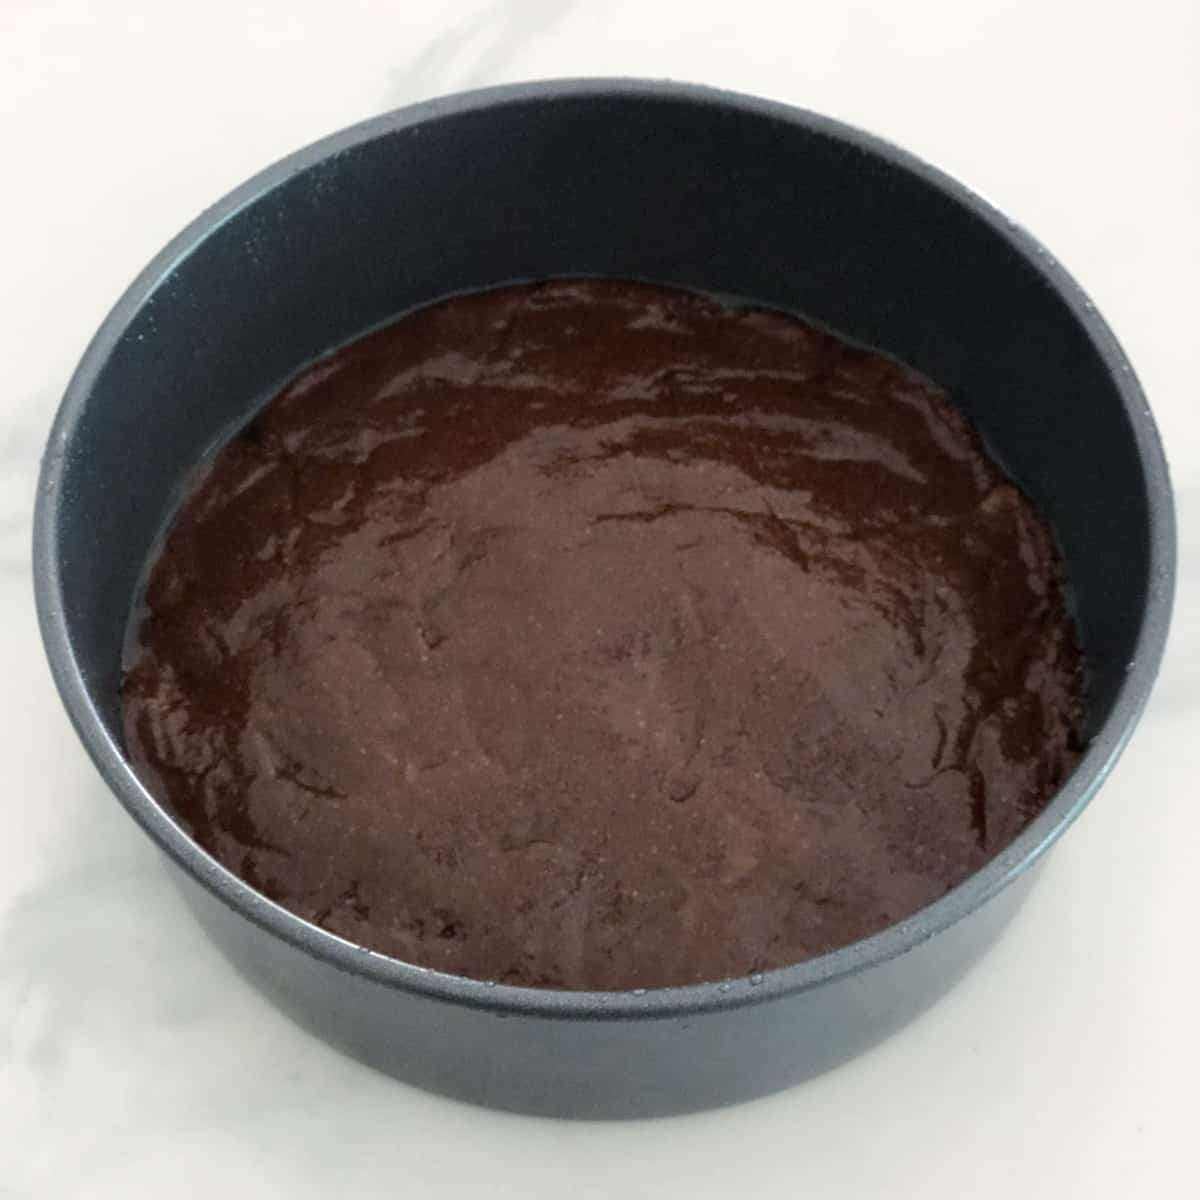 Unbaked Nutella cake in round cake pan.